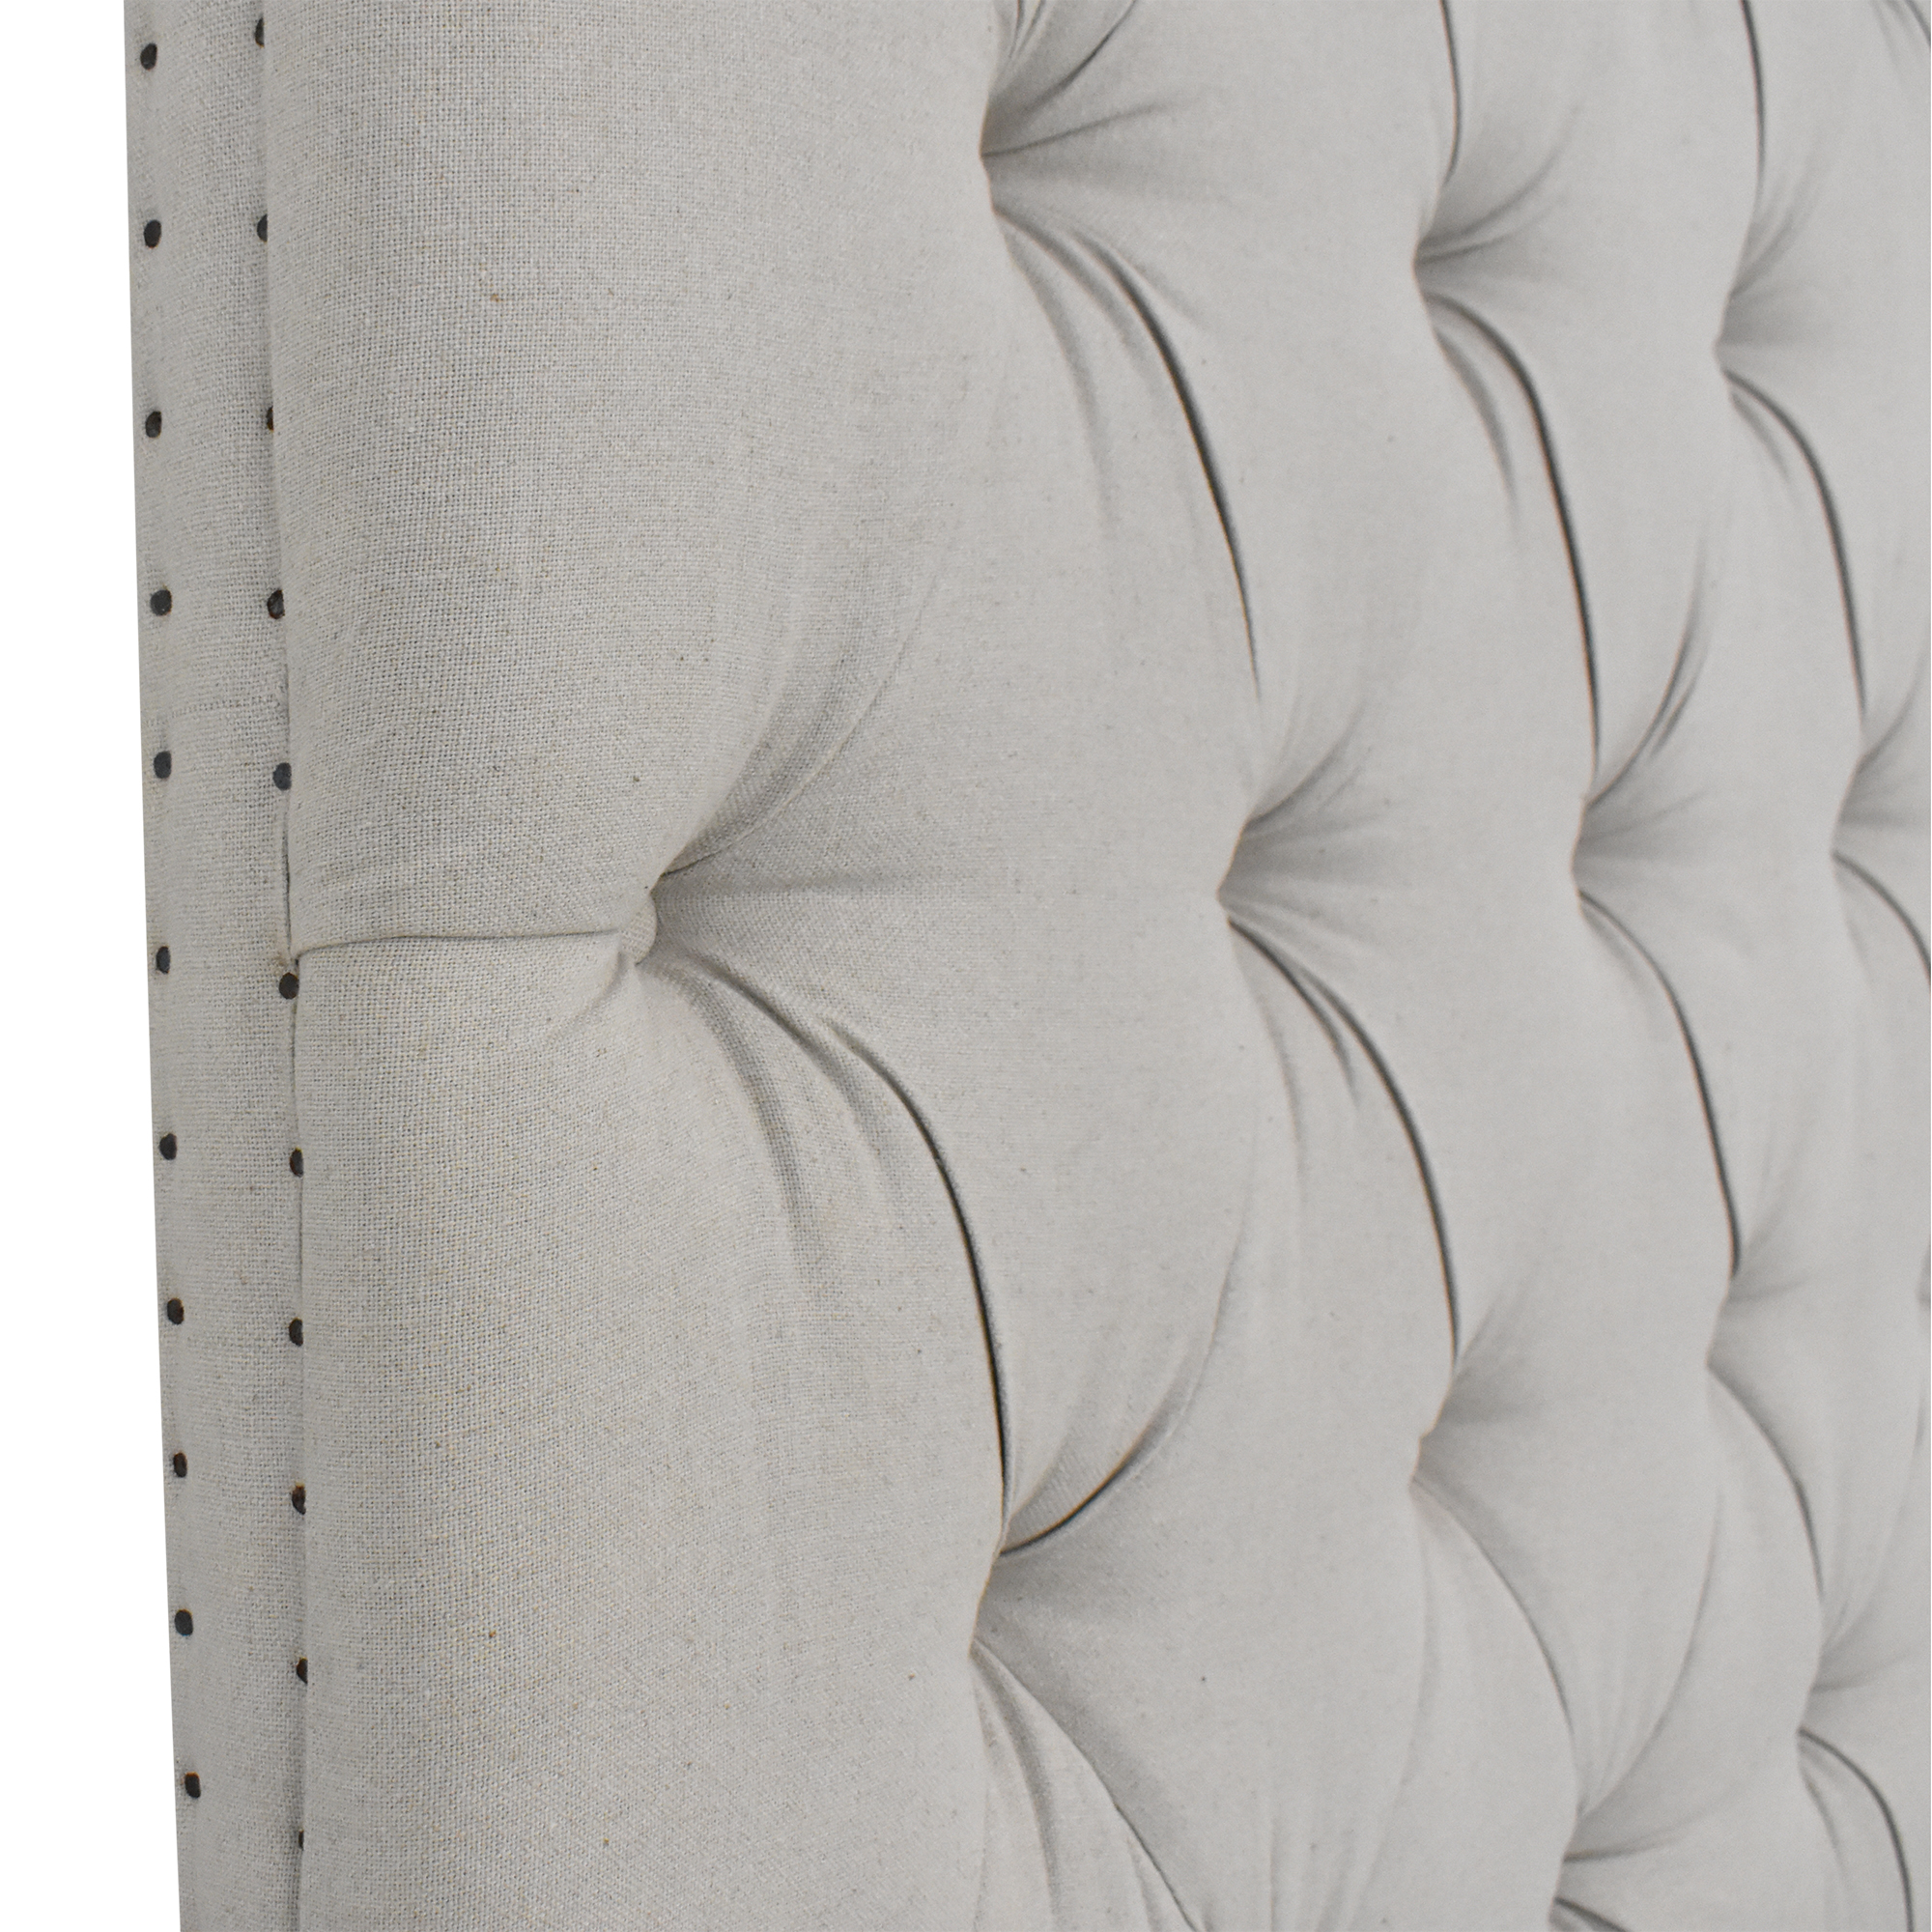 Tufted Queen Headboard for sale